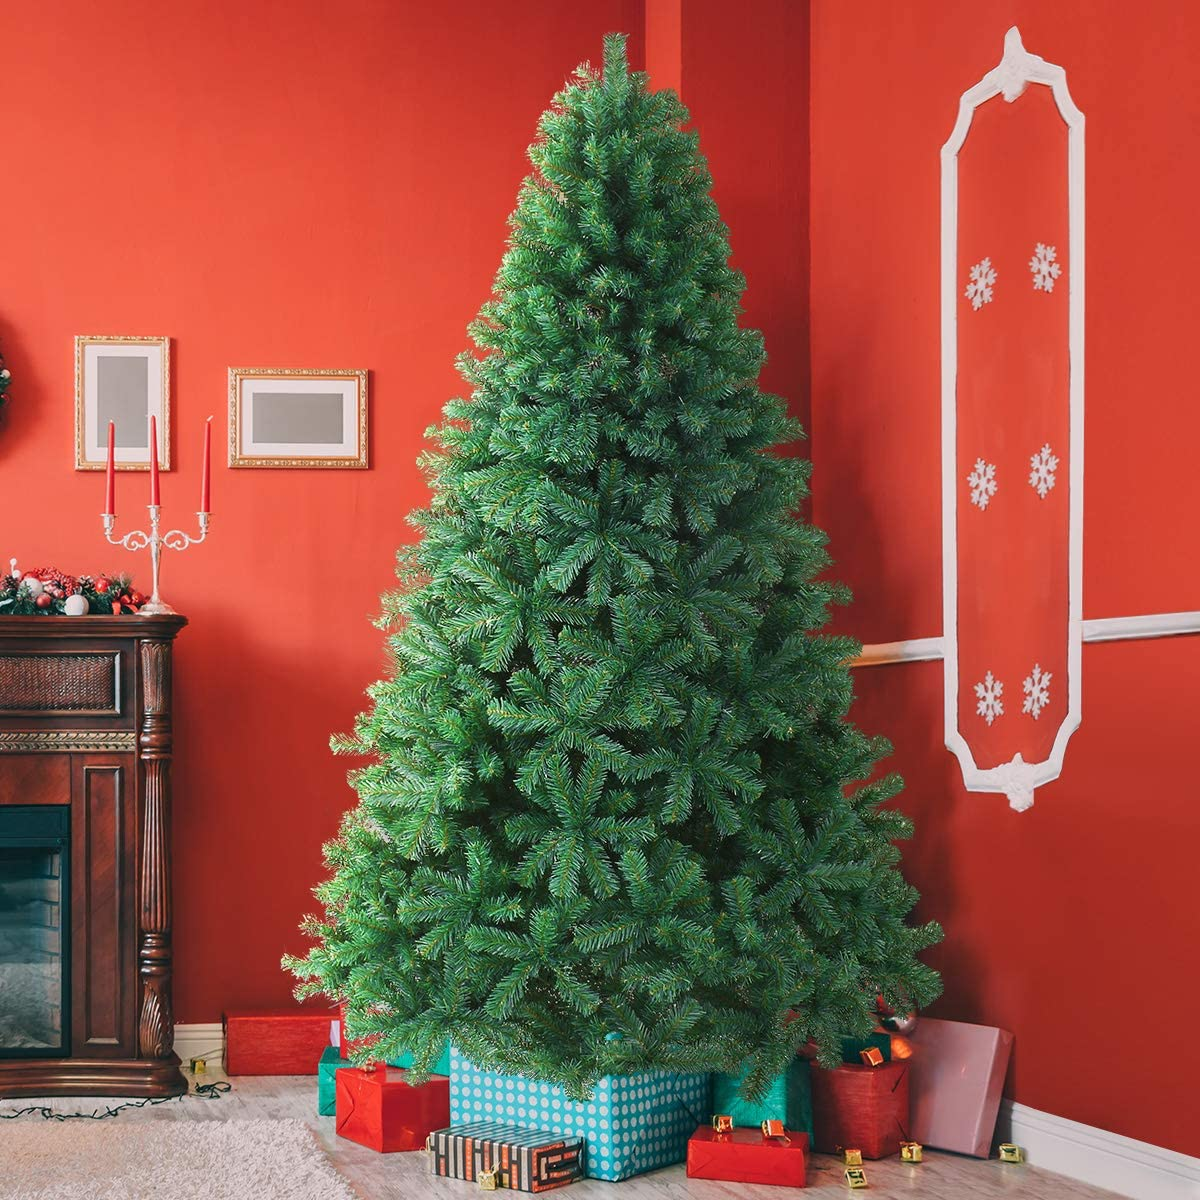 KING BIRD Christmas Tree Premium Spruce Hinged Artificial Xmas Tree 1616 Branch Tips with Foldable Metal Stand Pop Up Pine Tree for Outdoor and Indoor Decor 8FT